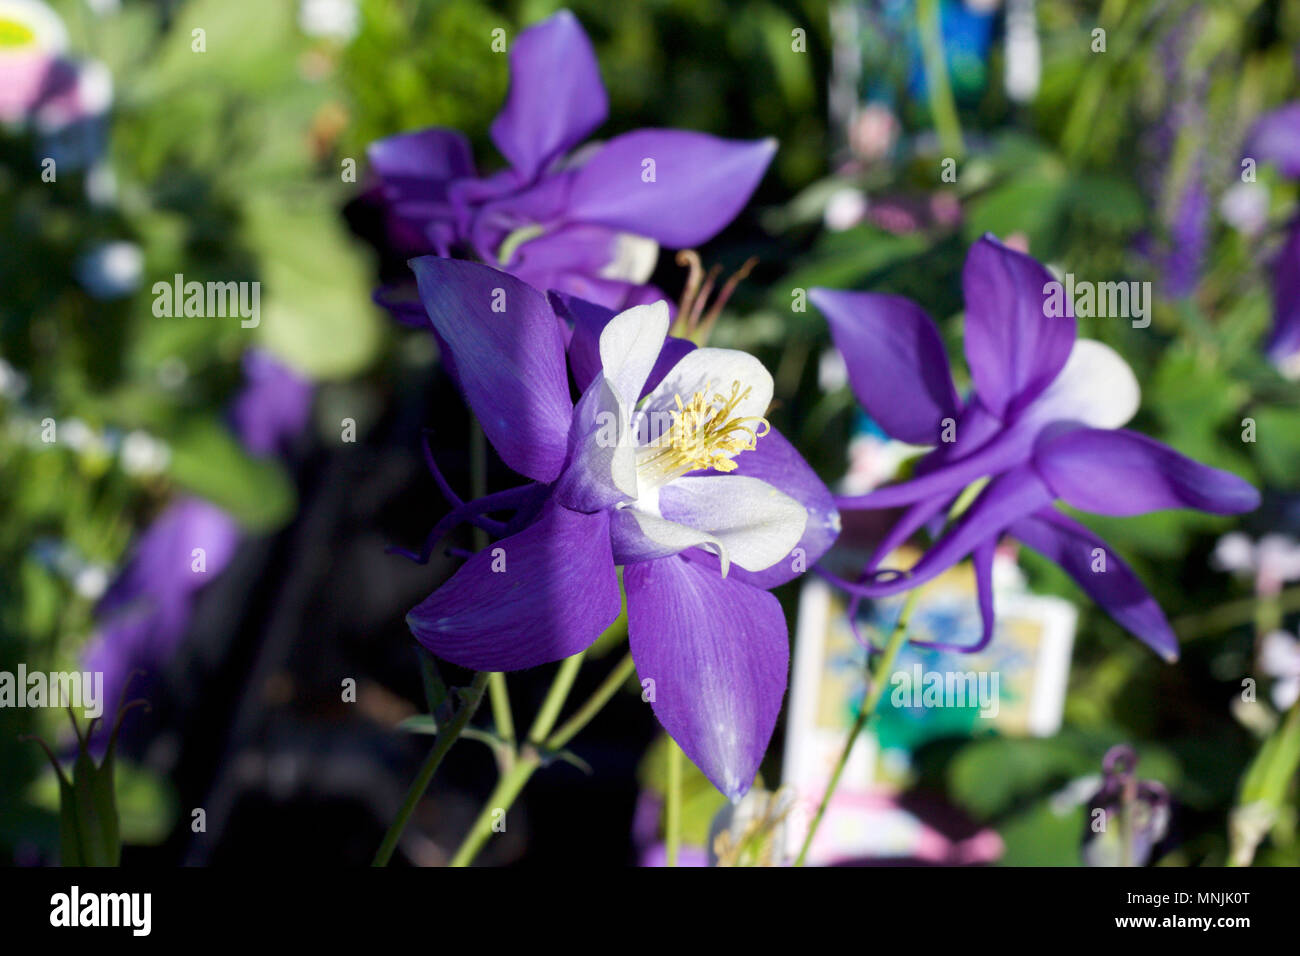 Close Up View Of Beautiful Purple And White Columbine Flowers In